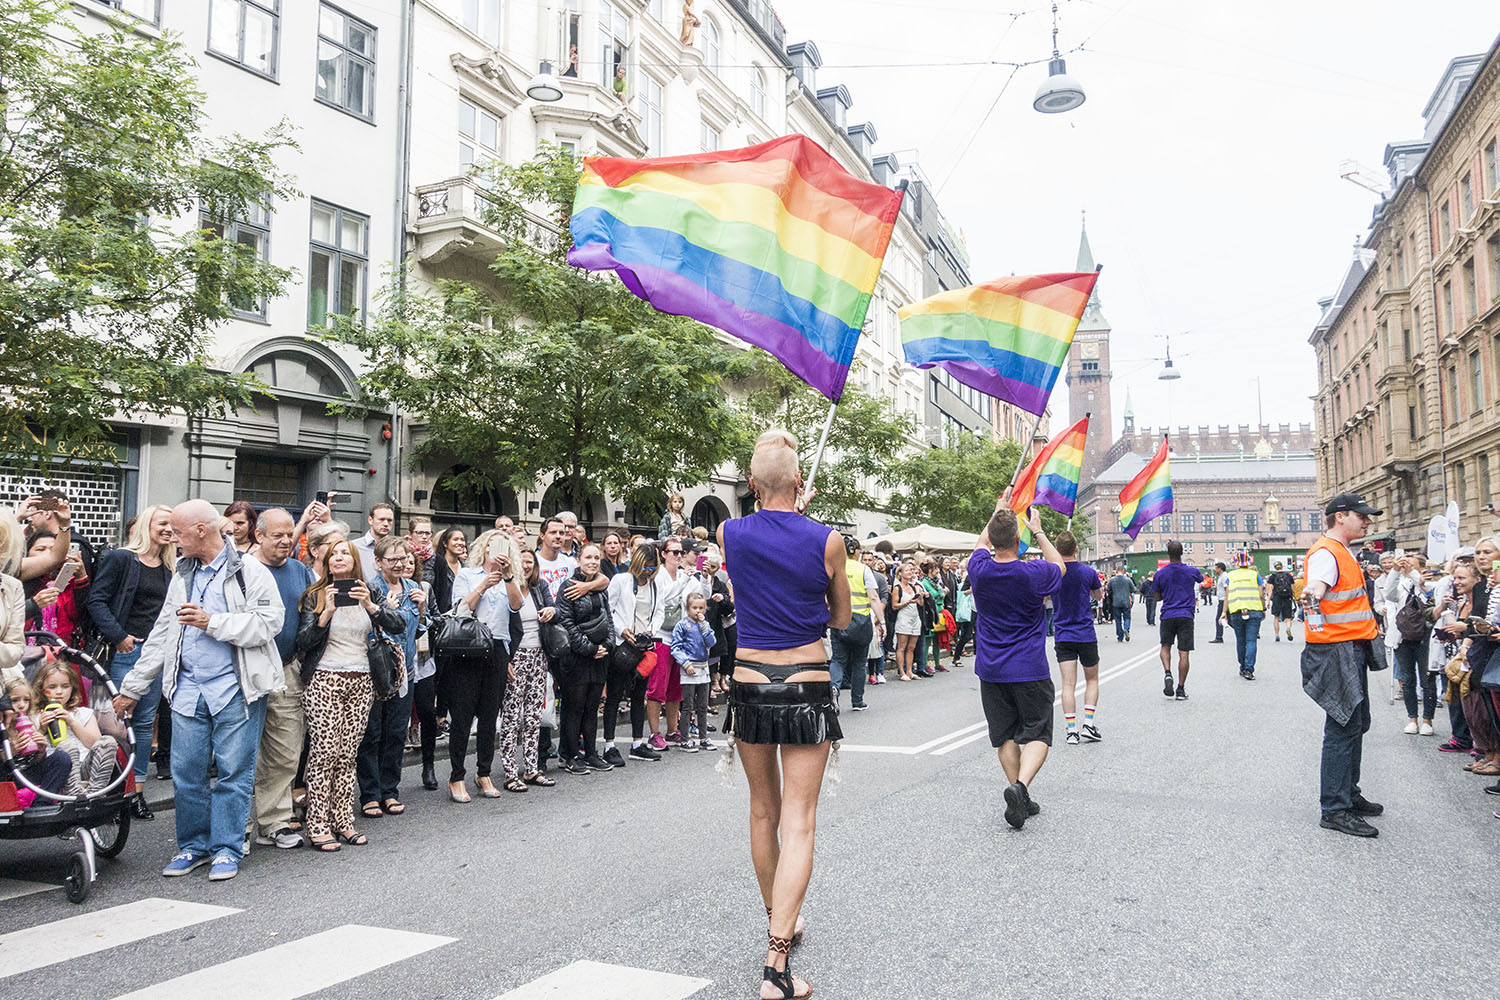 CphPride2016_HelenaLundquist_blog_2